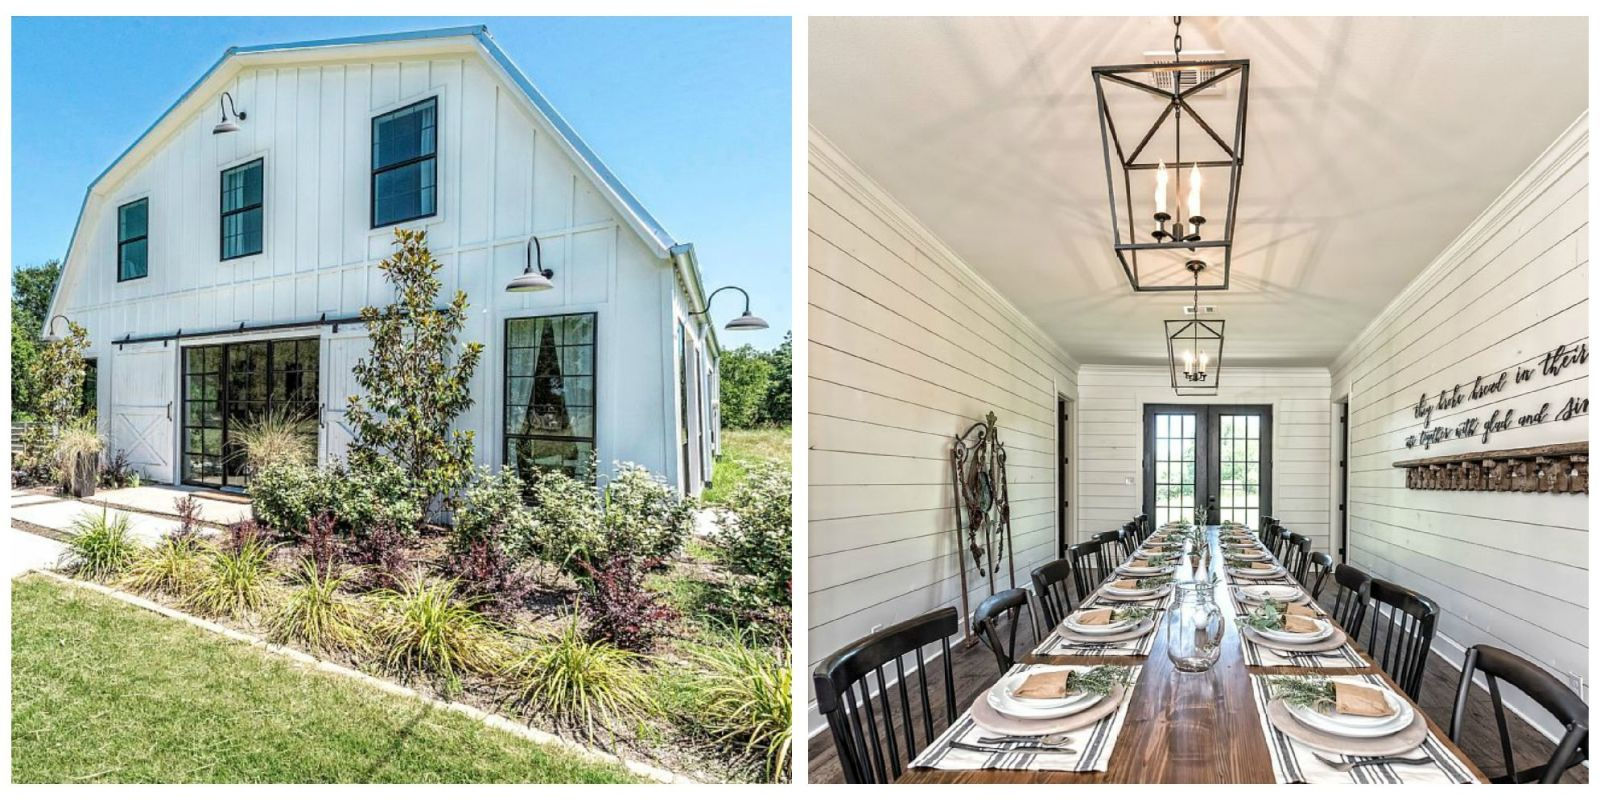 This Barndominium From Fixer Upper is Now Available to Rent — Waco Texas Home Rentals